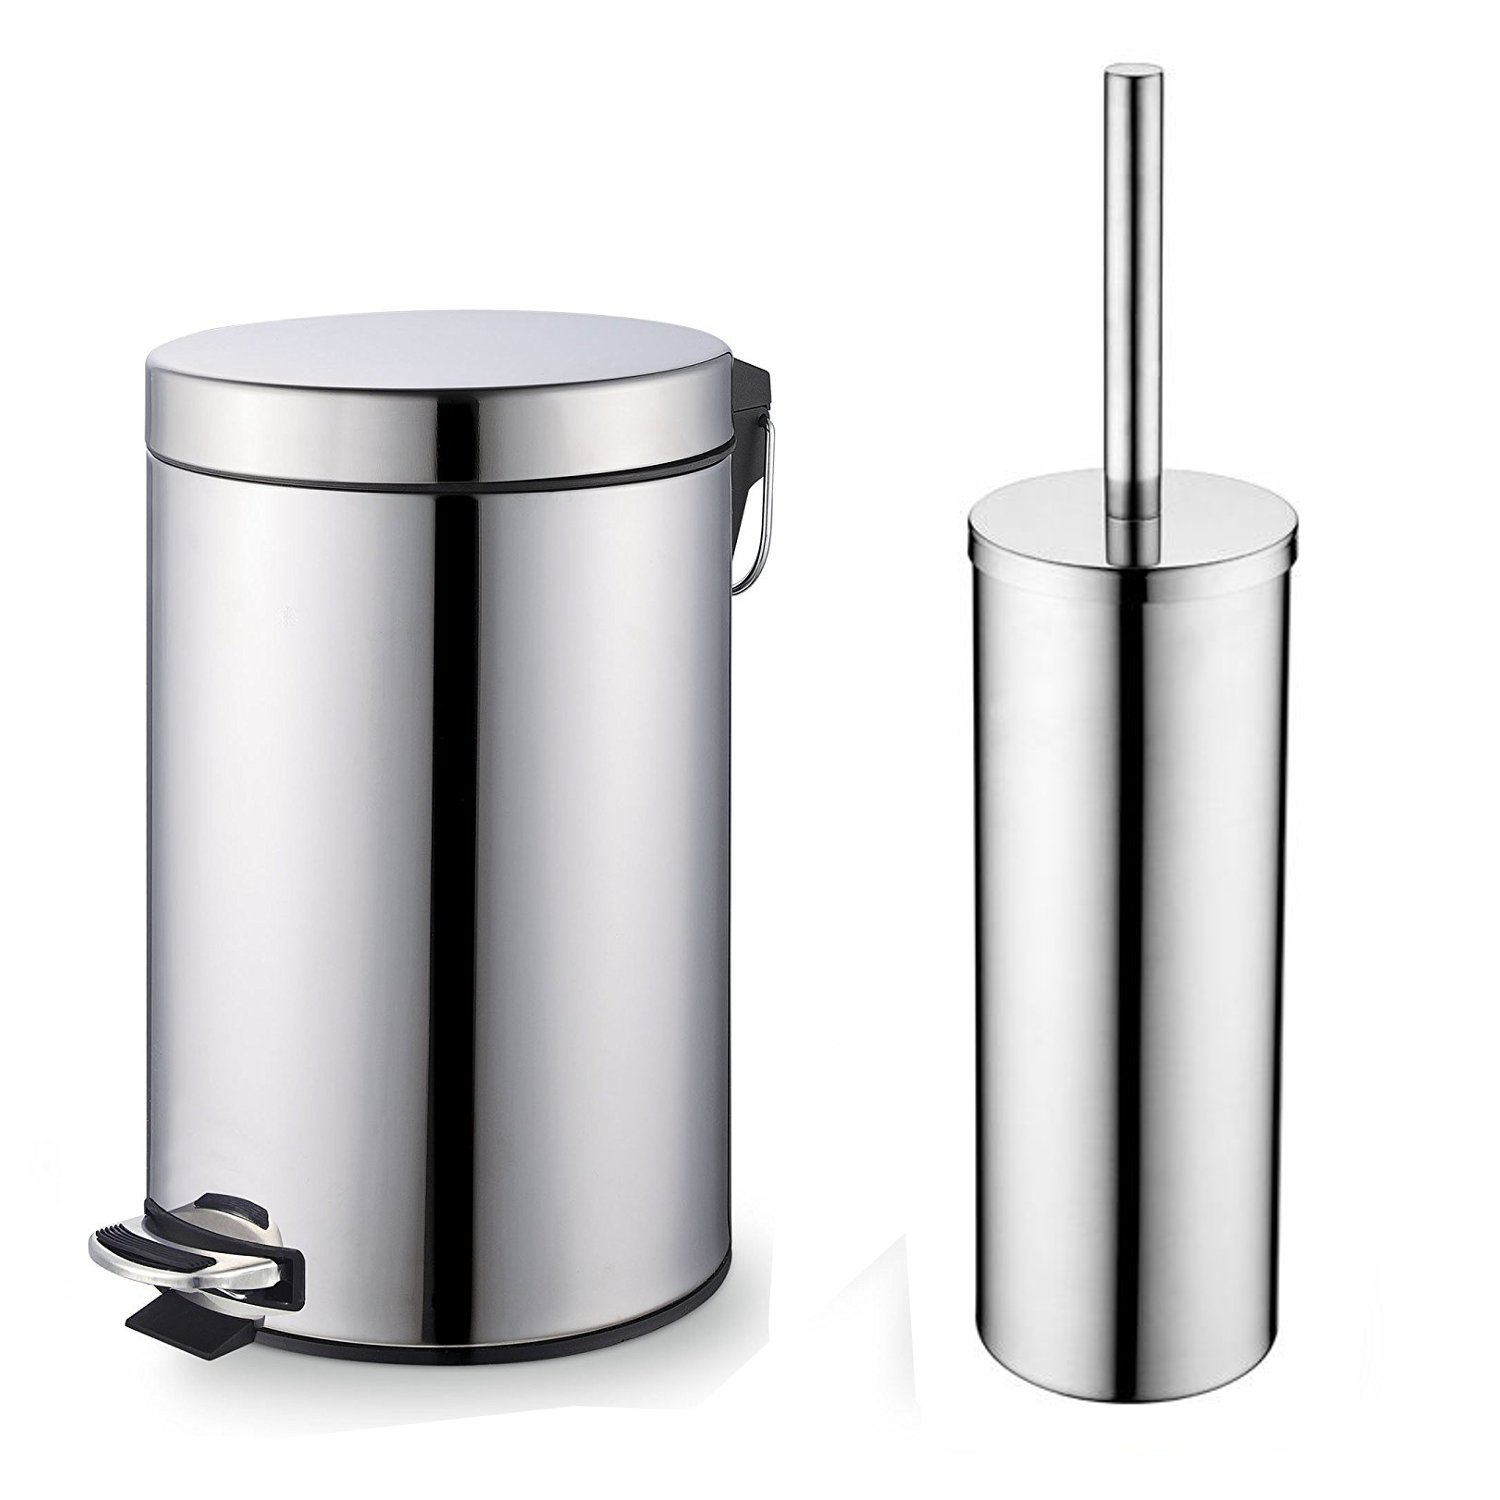 Home Treats Chrome Pedal Bin And Toilet Brush Set. 3 Litre Bin with Toilet Brush. 2 Piece Set For Bathroom